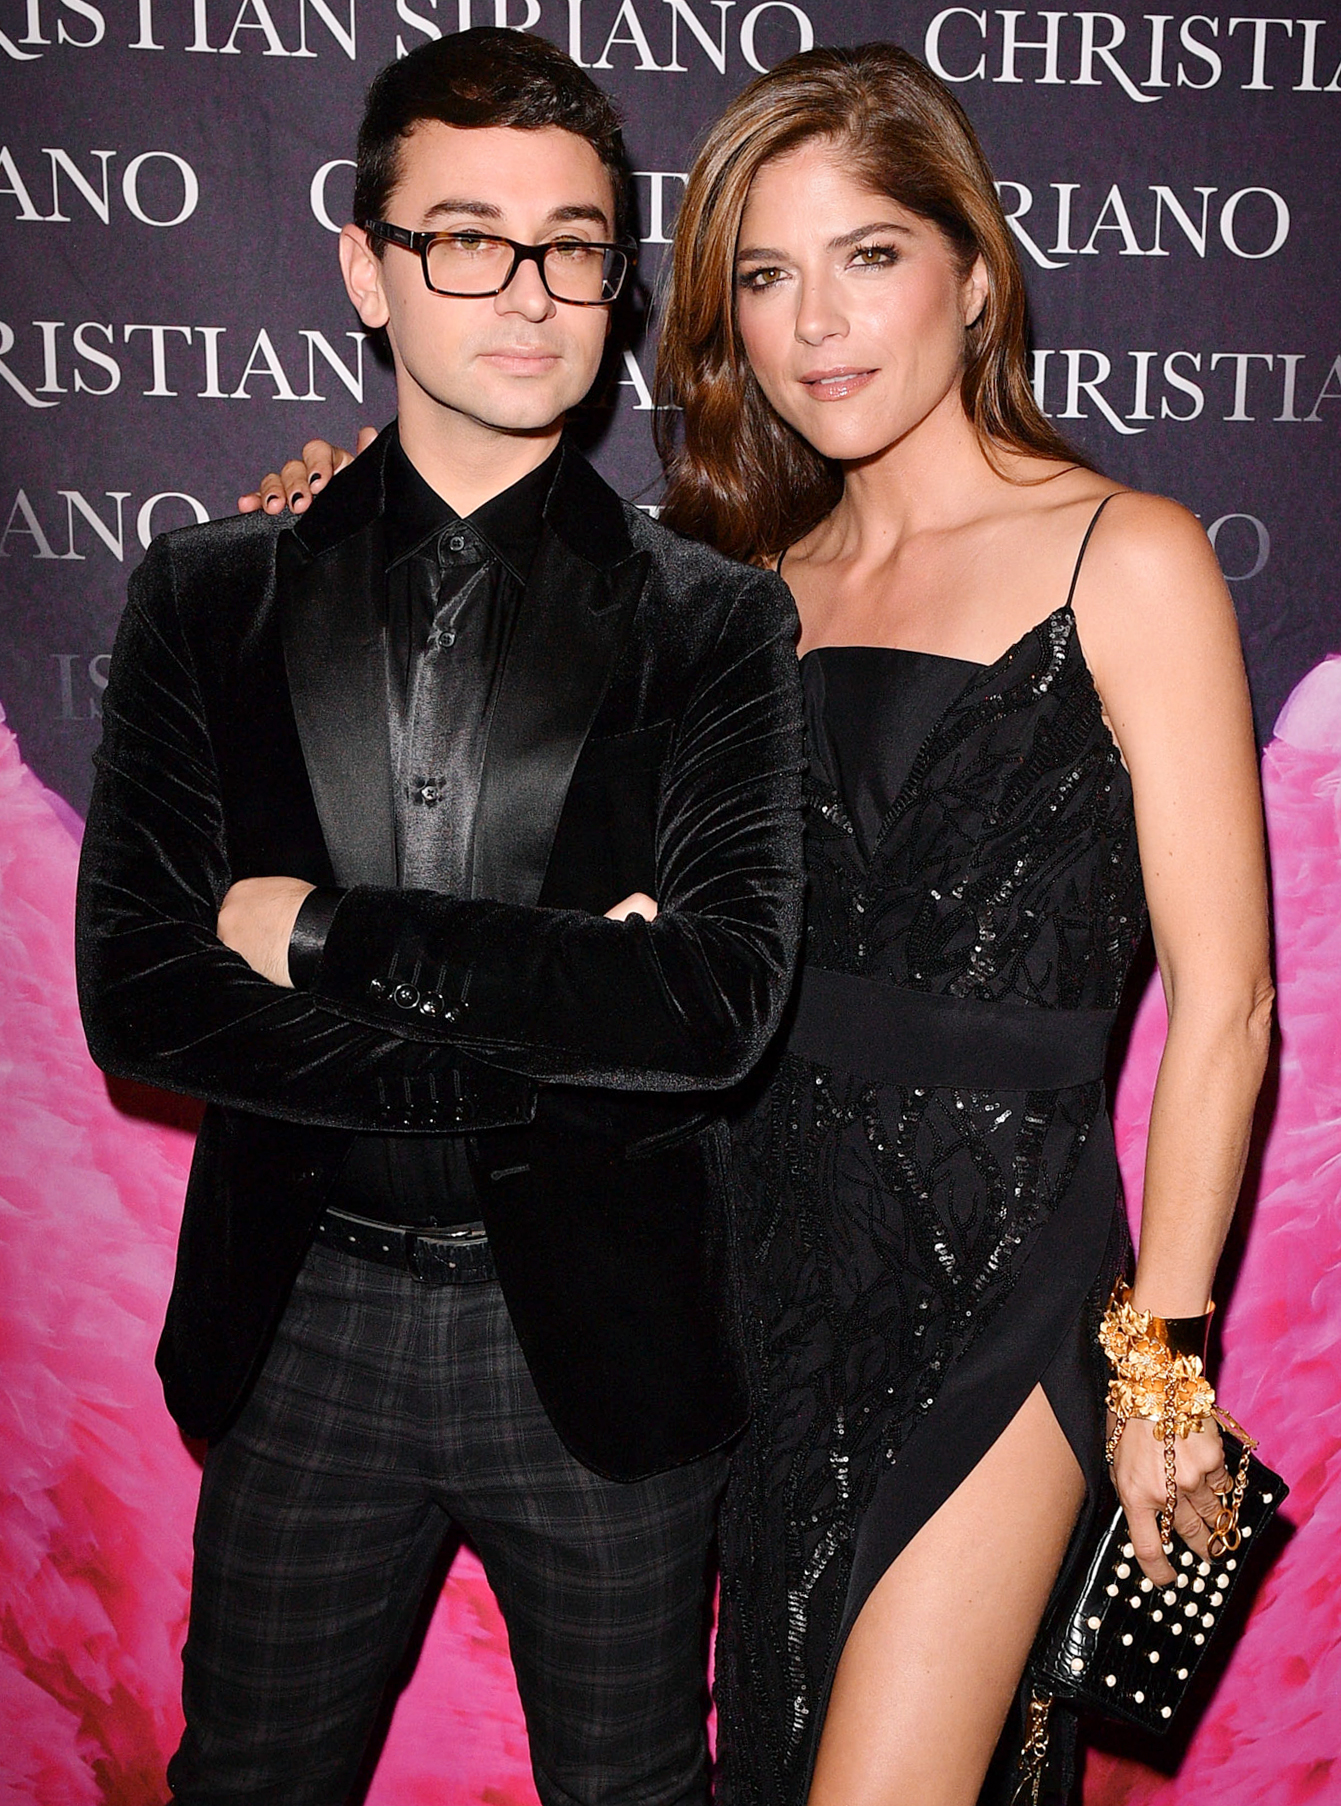 Christian Siriano Canadian Book Launch